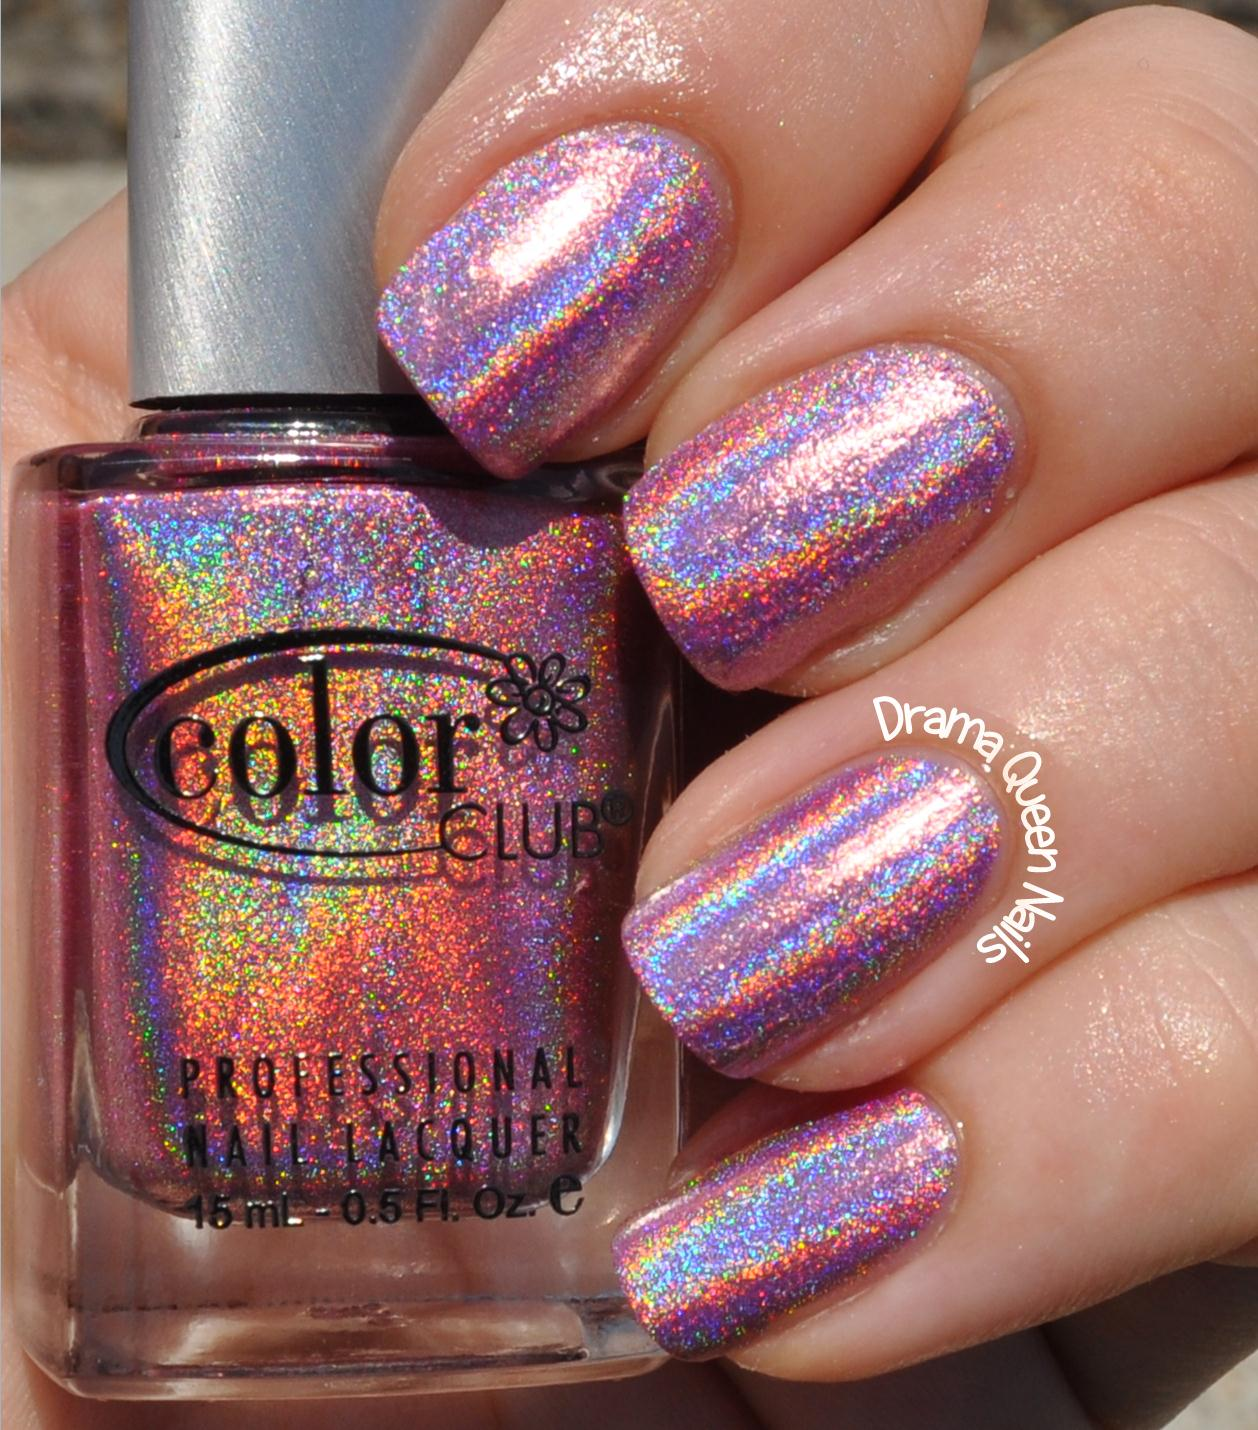 Color Club Holographic Nail Polish Swatches: Drama Queen Nails: Color Club Halo Hues Collection